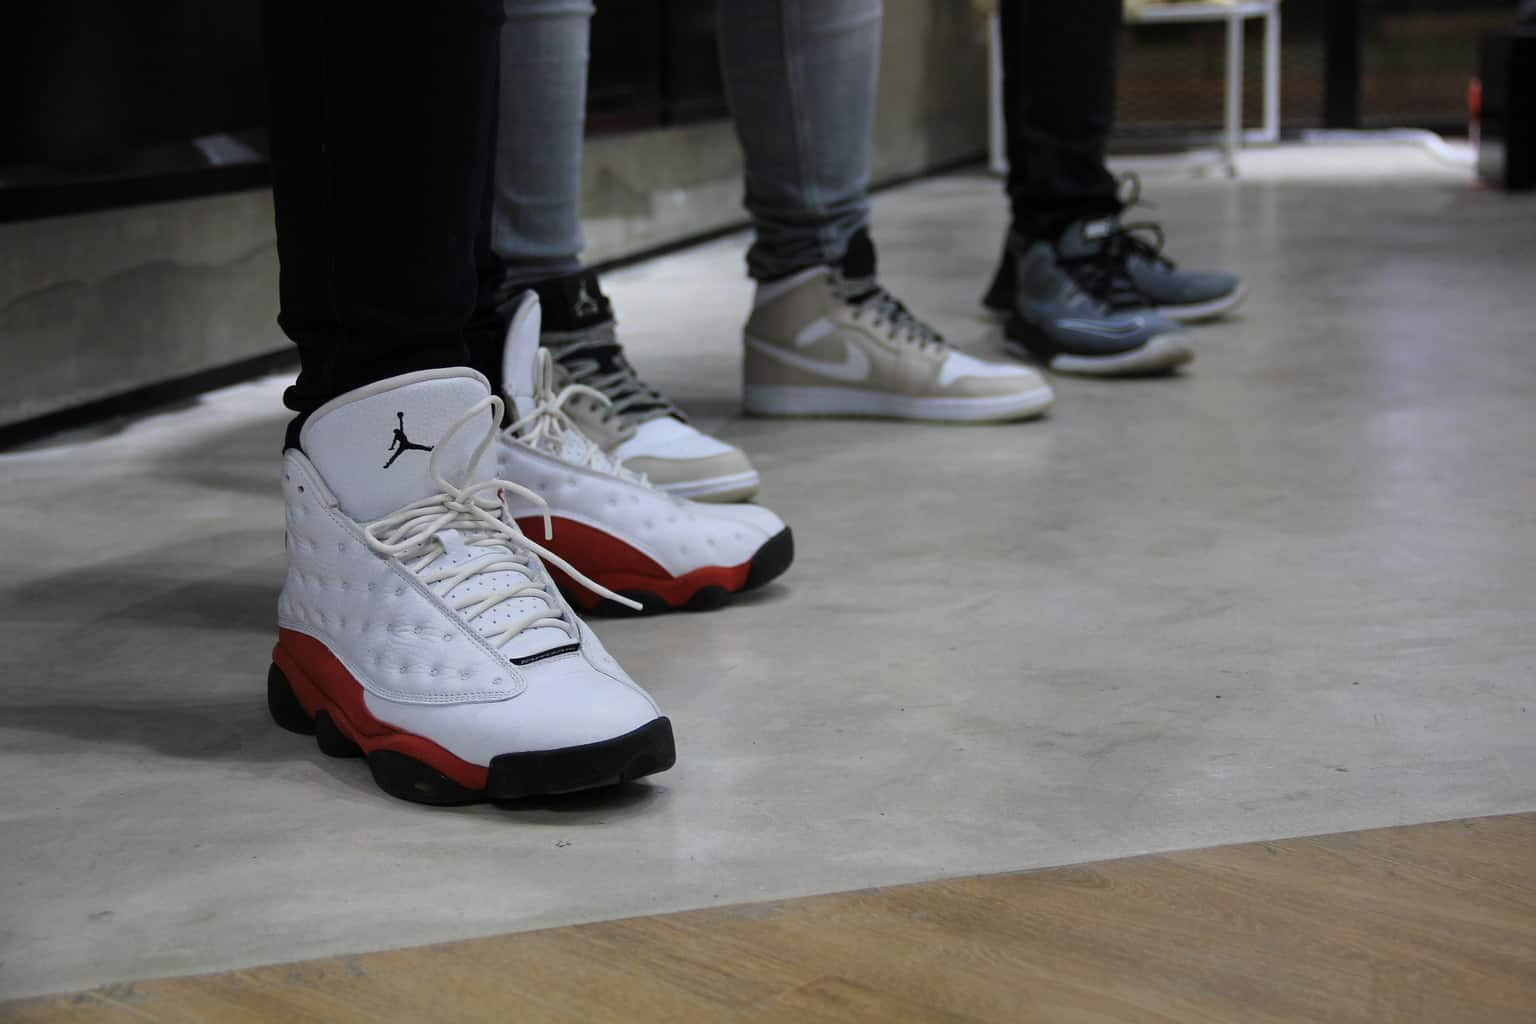 Three people wearing different kinds of basketball shoes